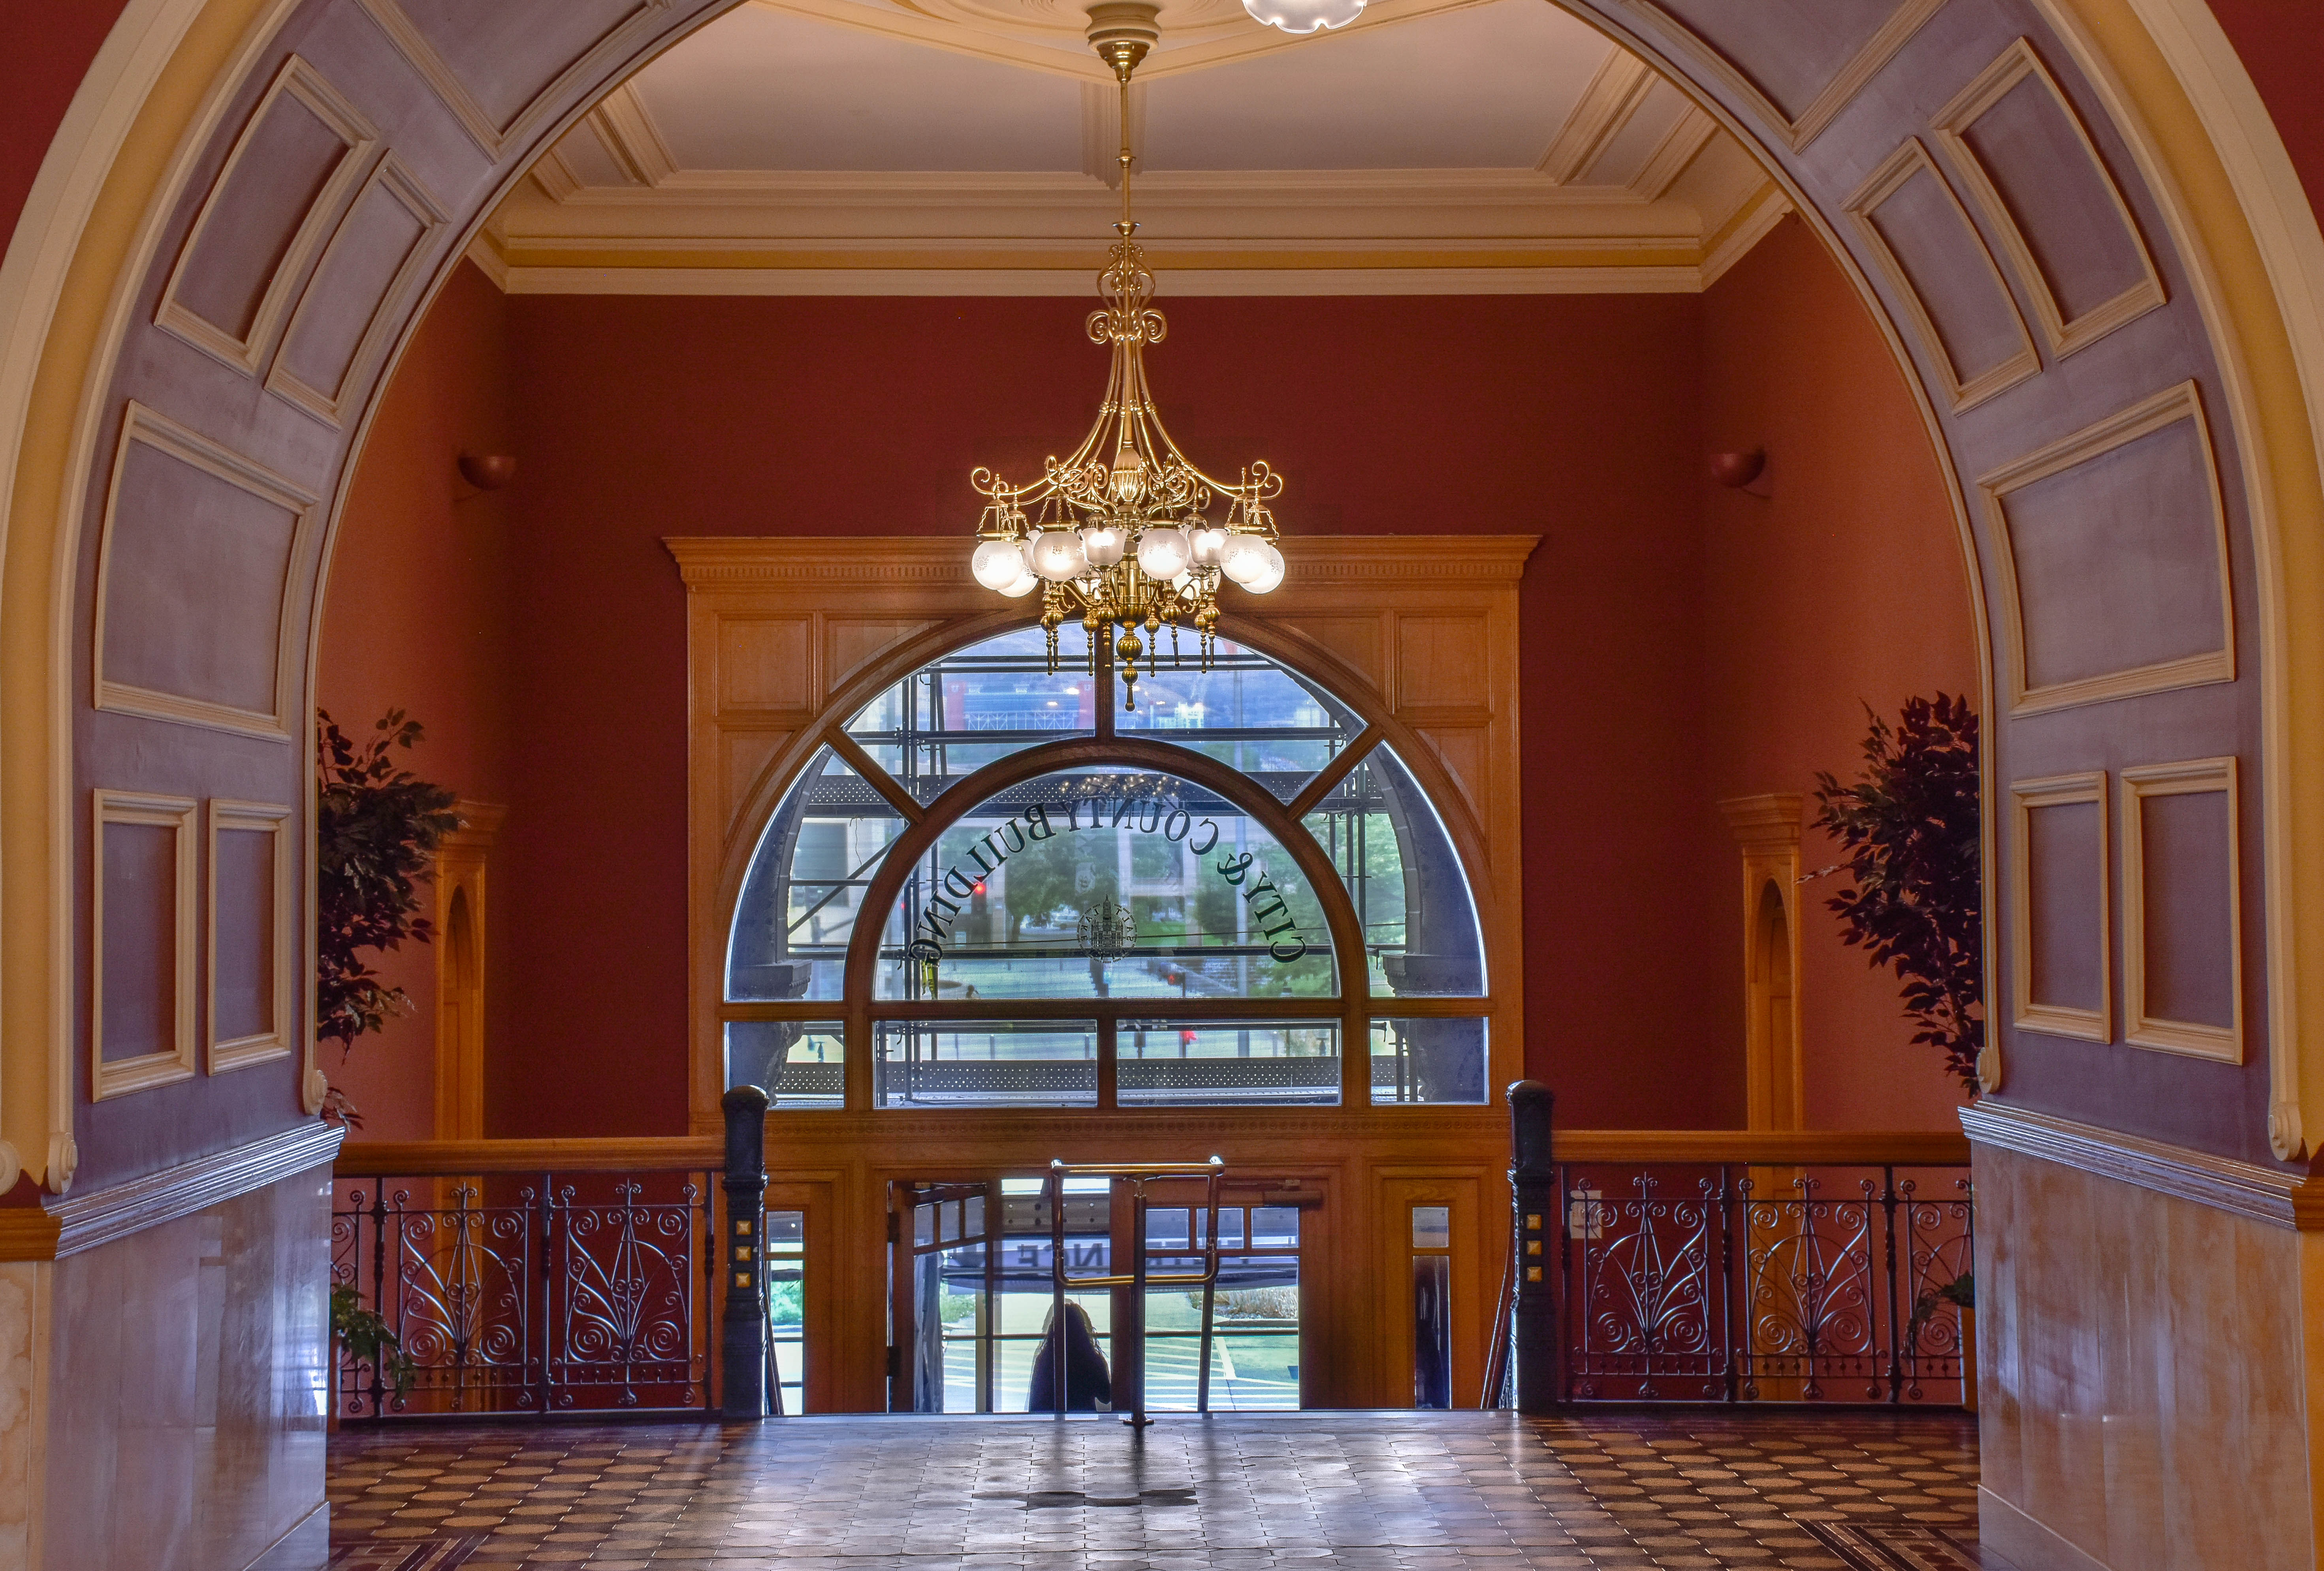 Foyer of the City and County Building